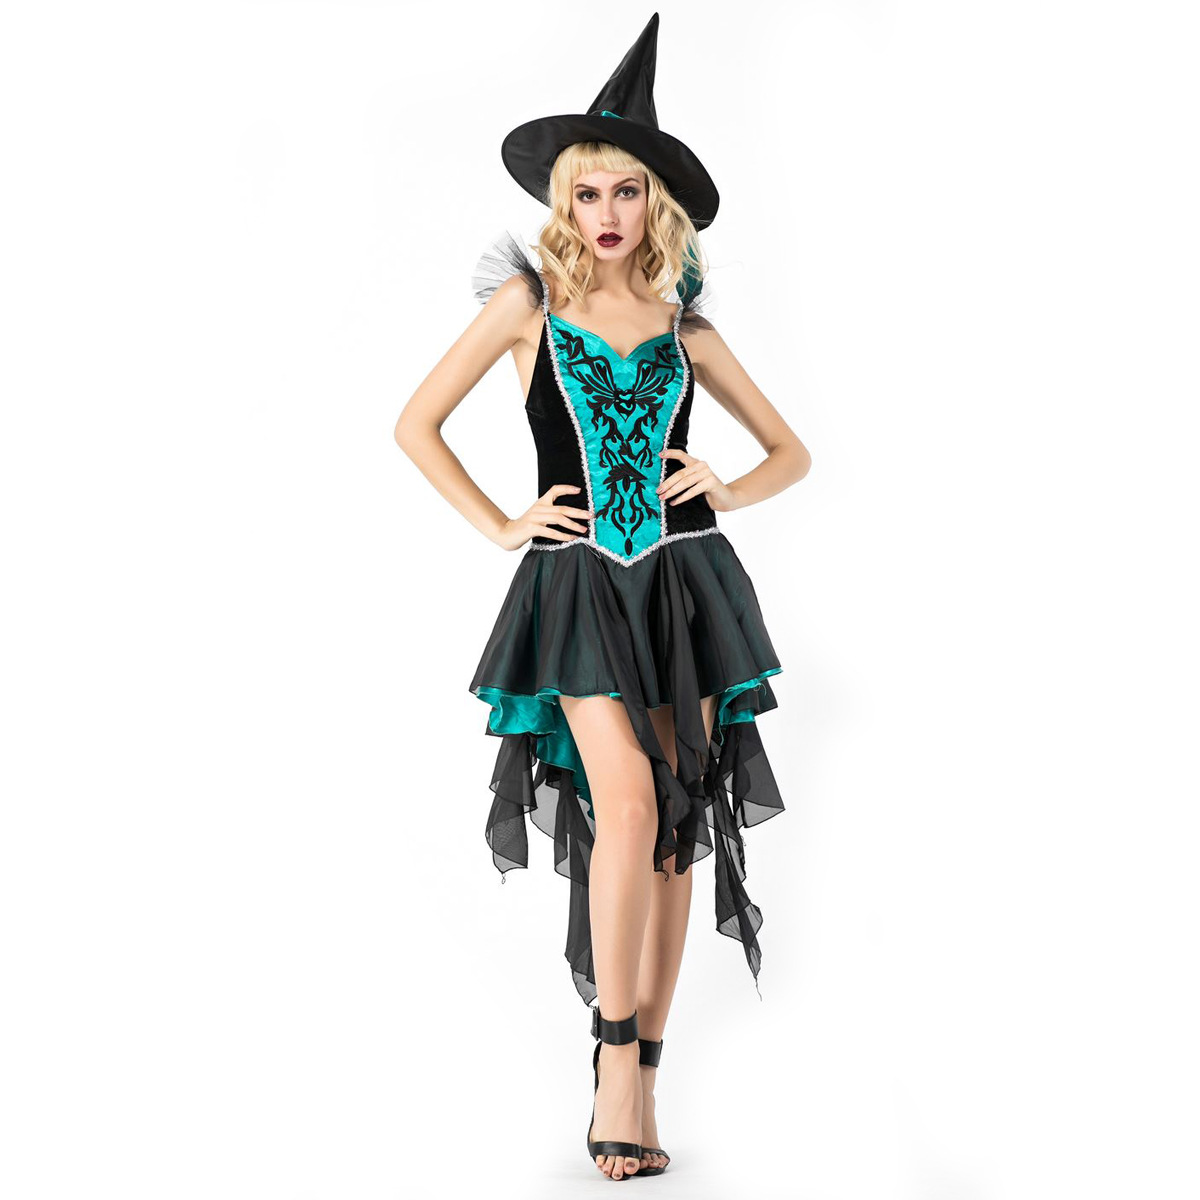 Witches, vampires, demons, stage costumes, adult costumes